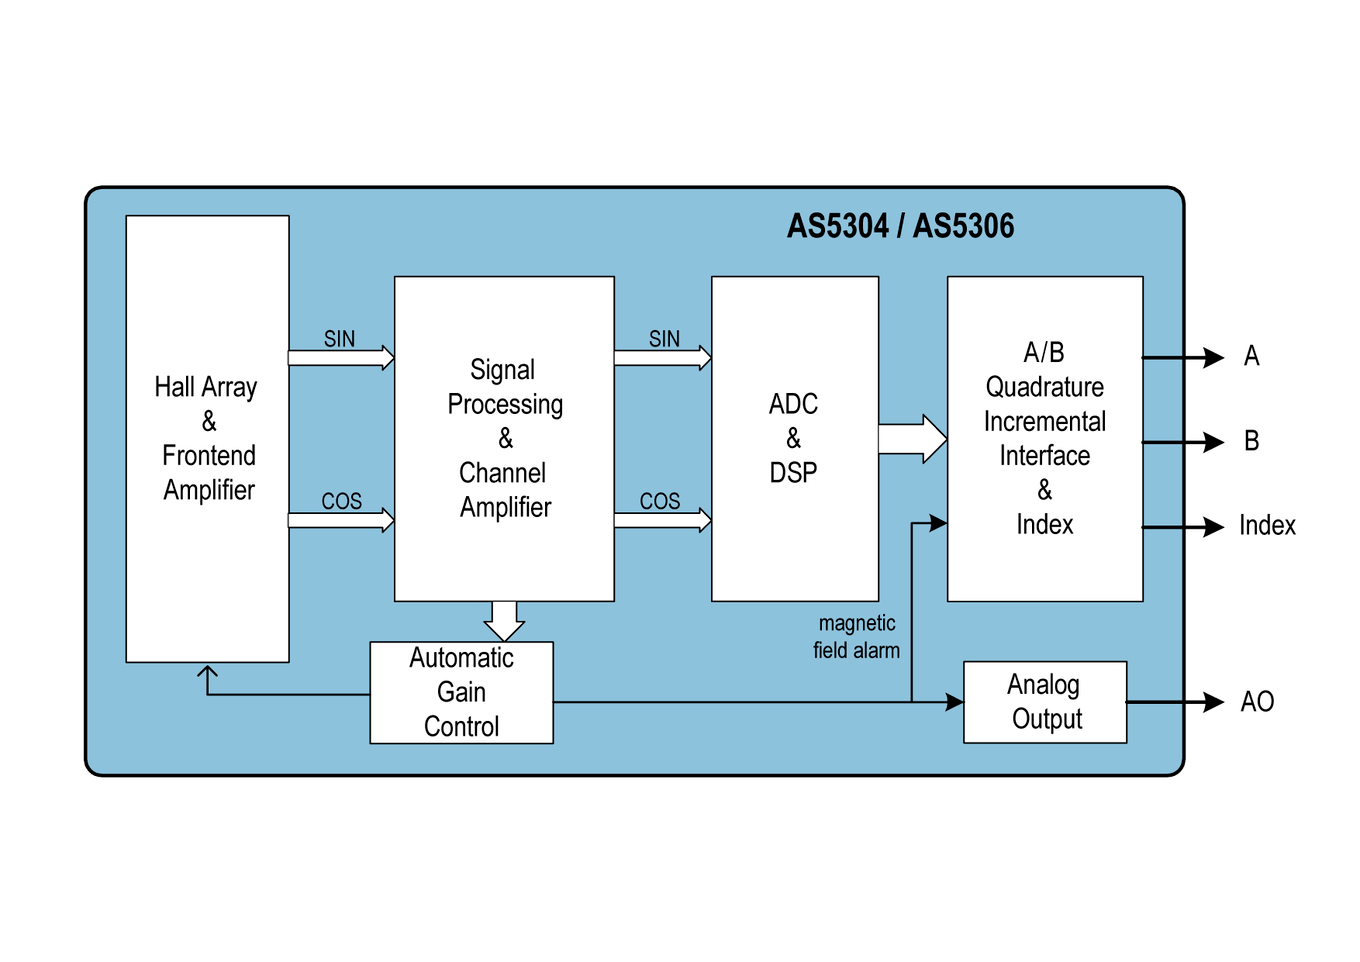 hight resolution of as5304 as5306 block diagram